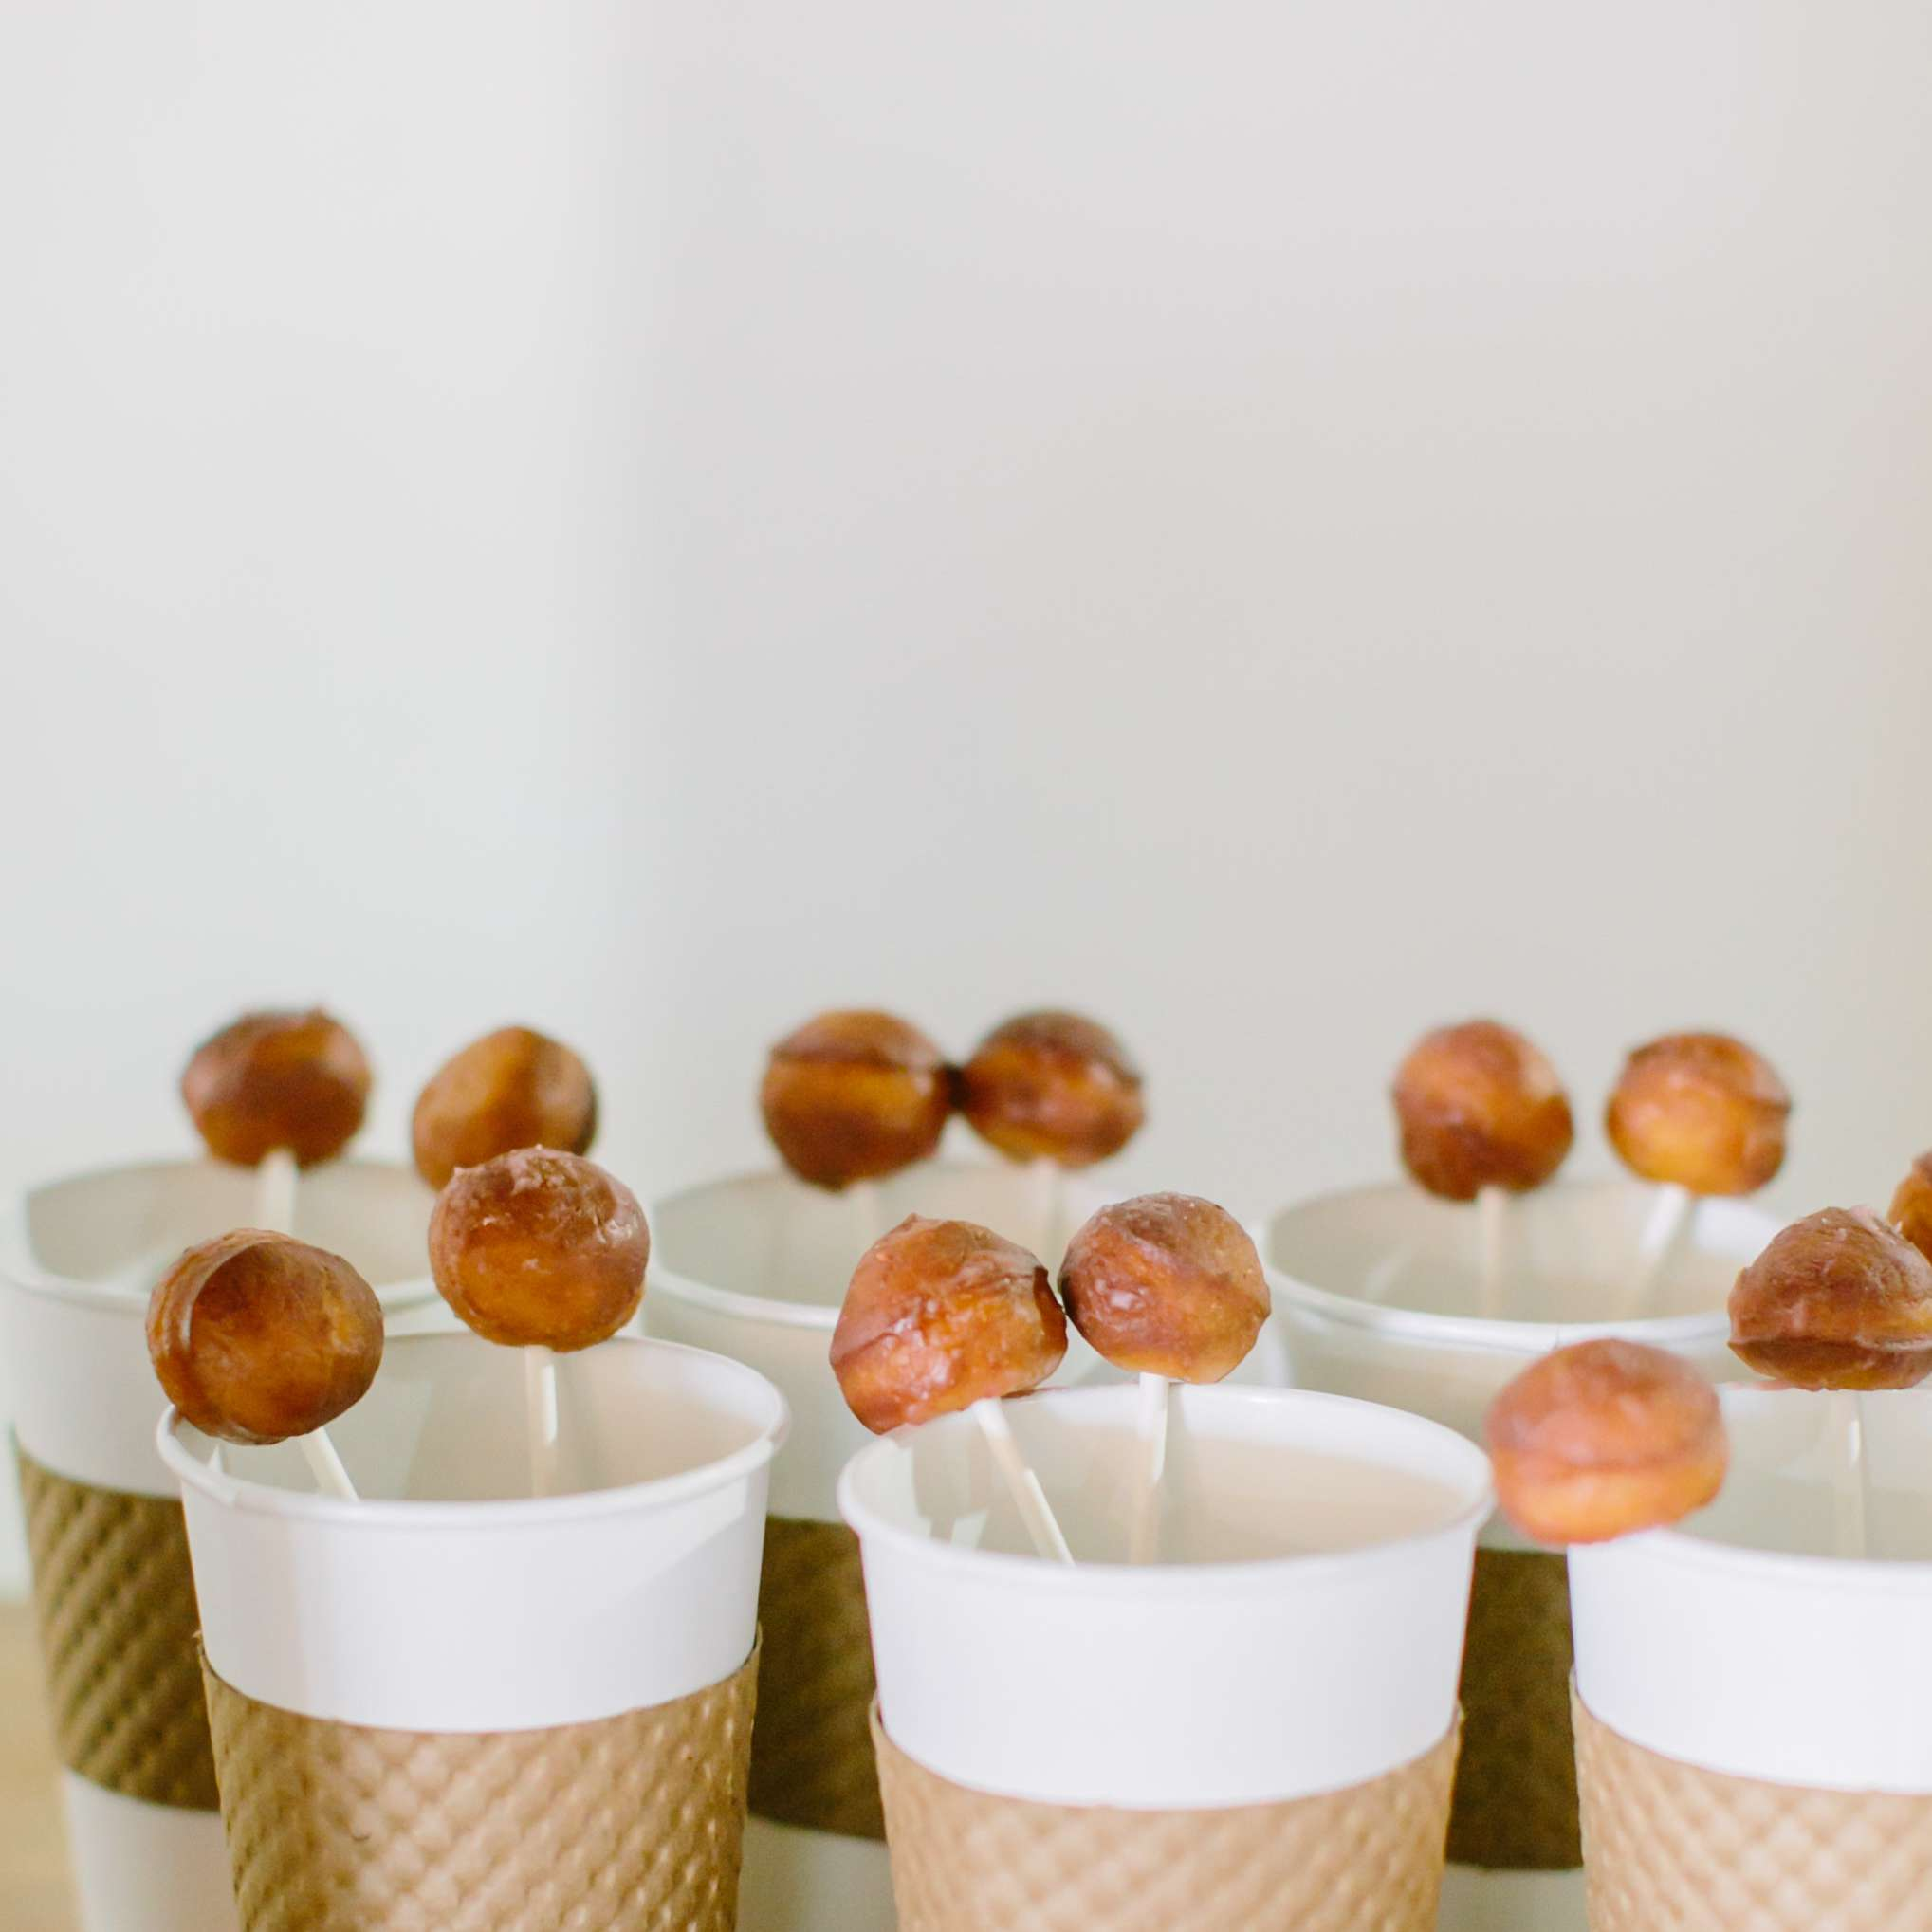 Coffee cups with donut holes on a stick